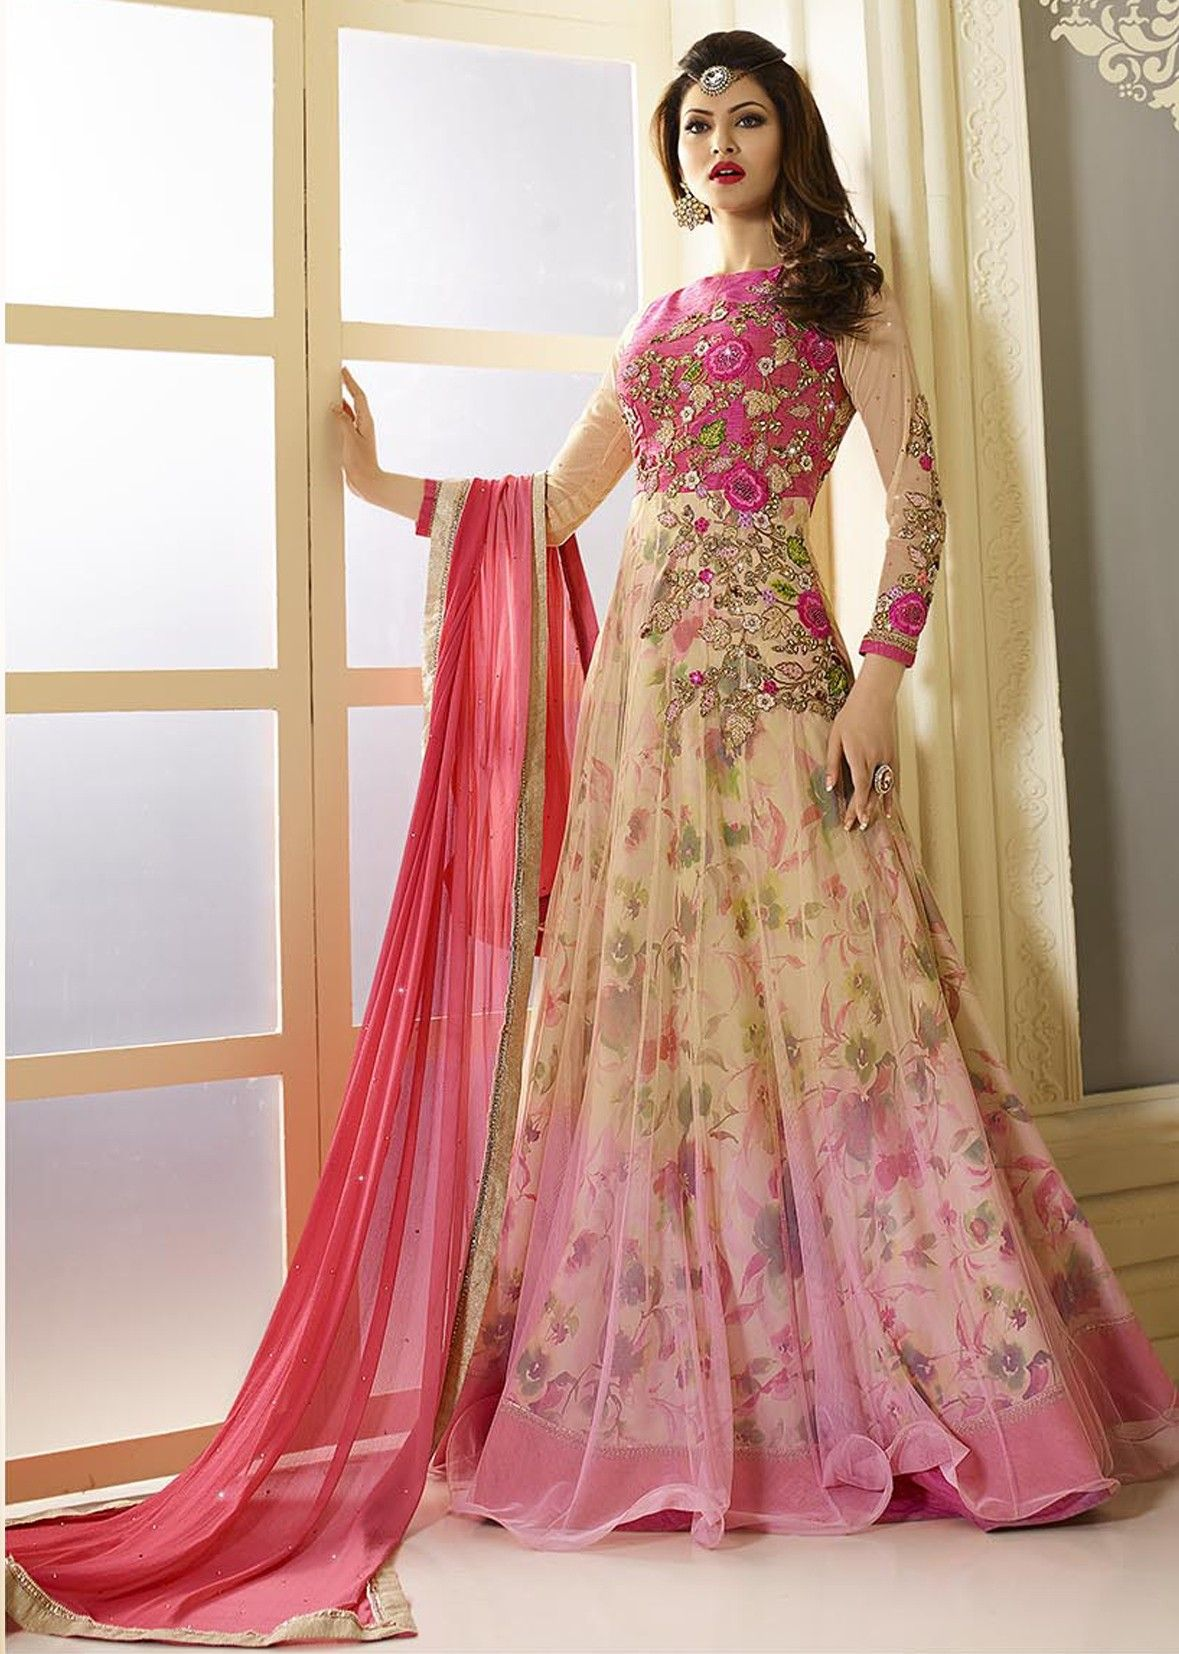 5a30390d8f Light Pink and Cream Colour Net Embroidery Work Stitched Suit ...